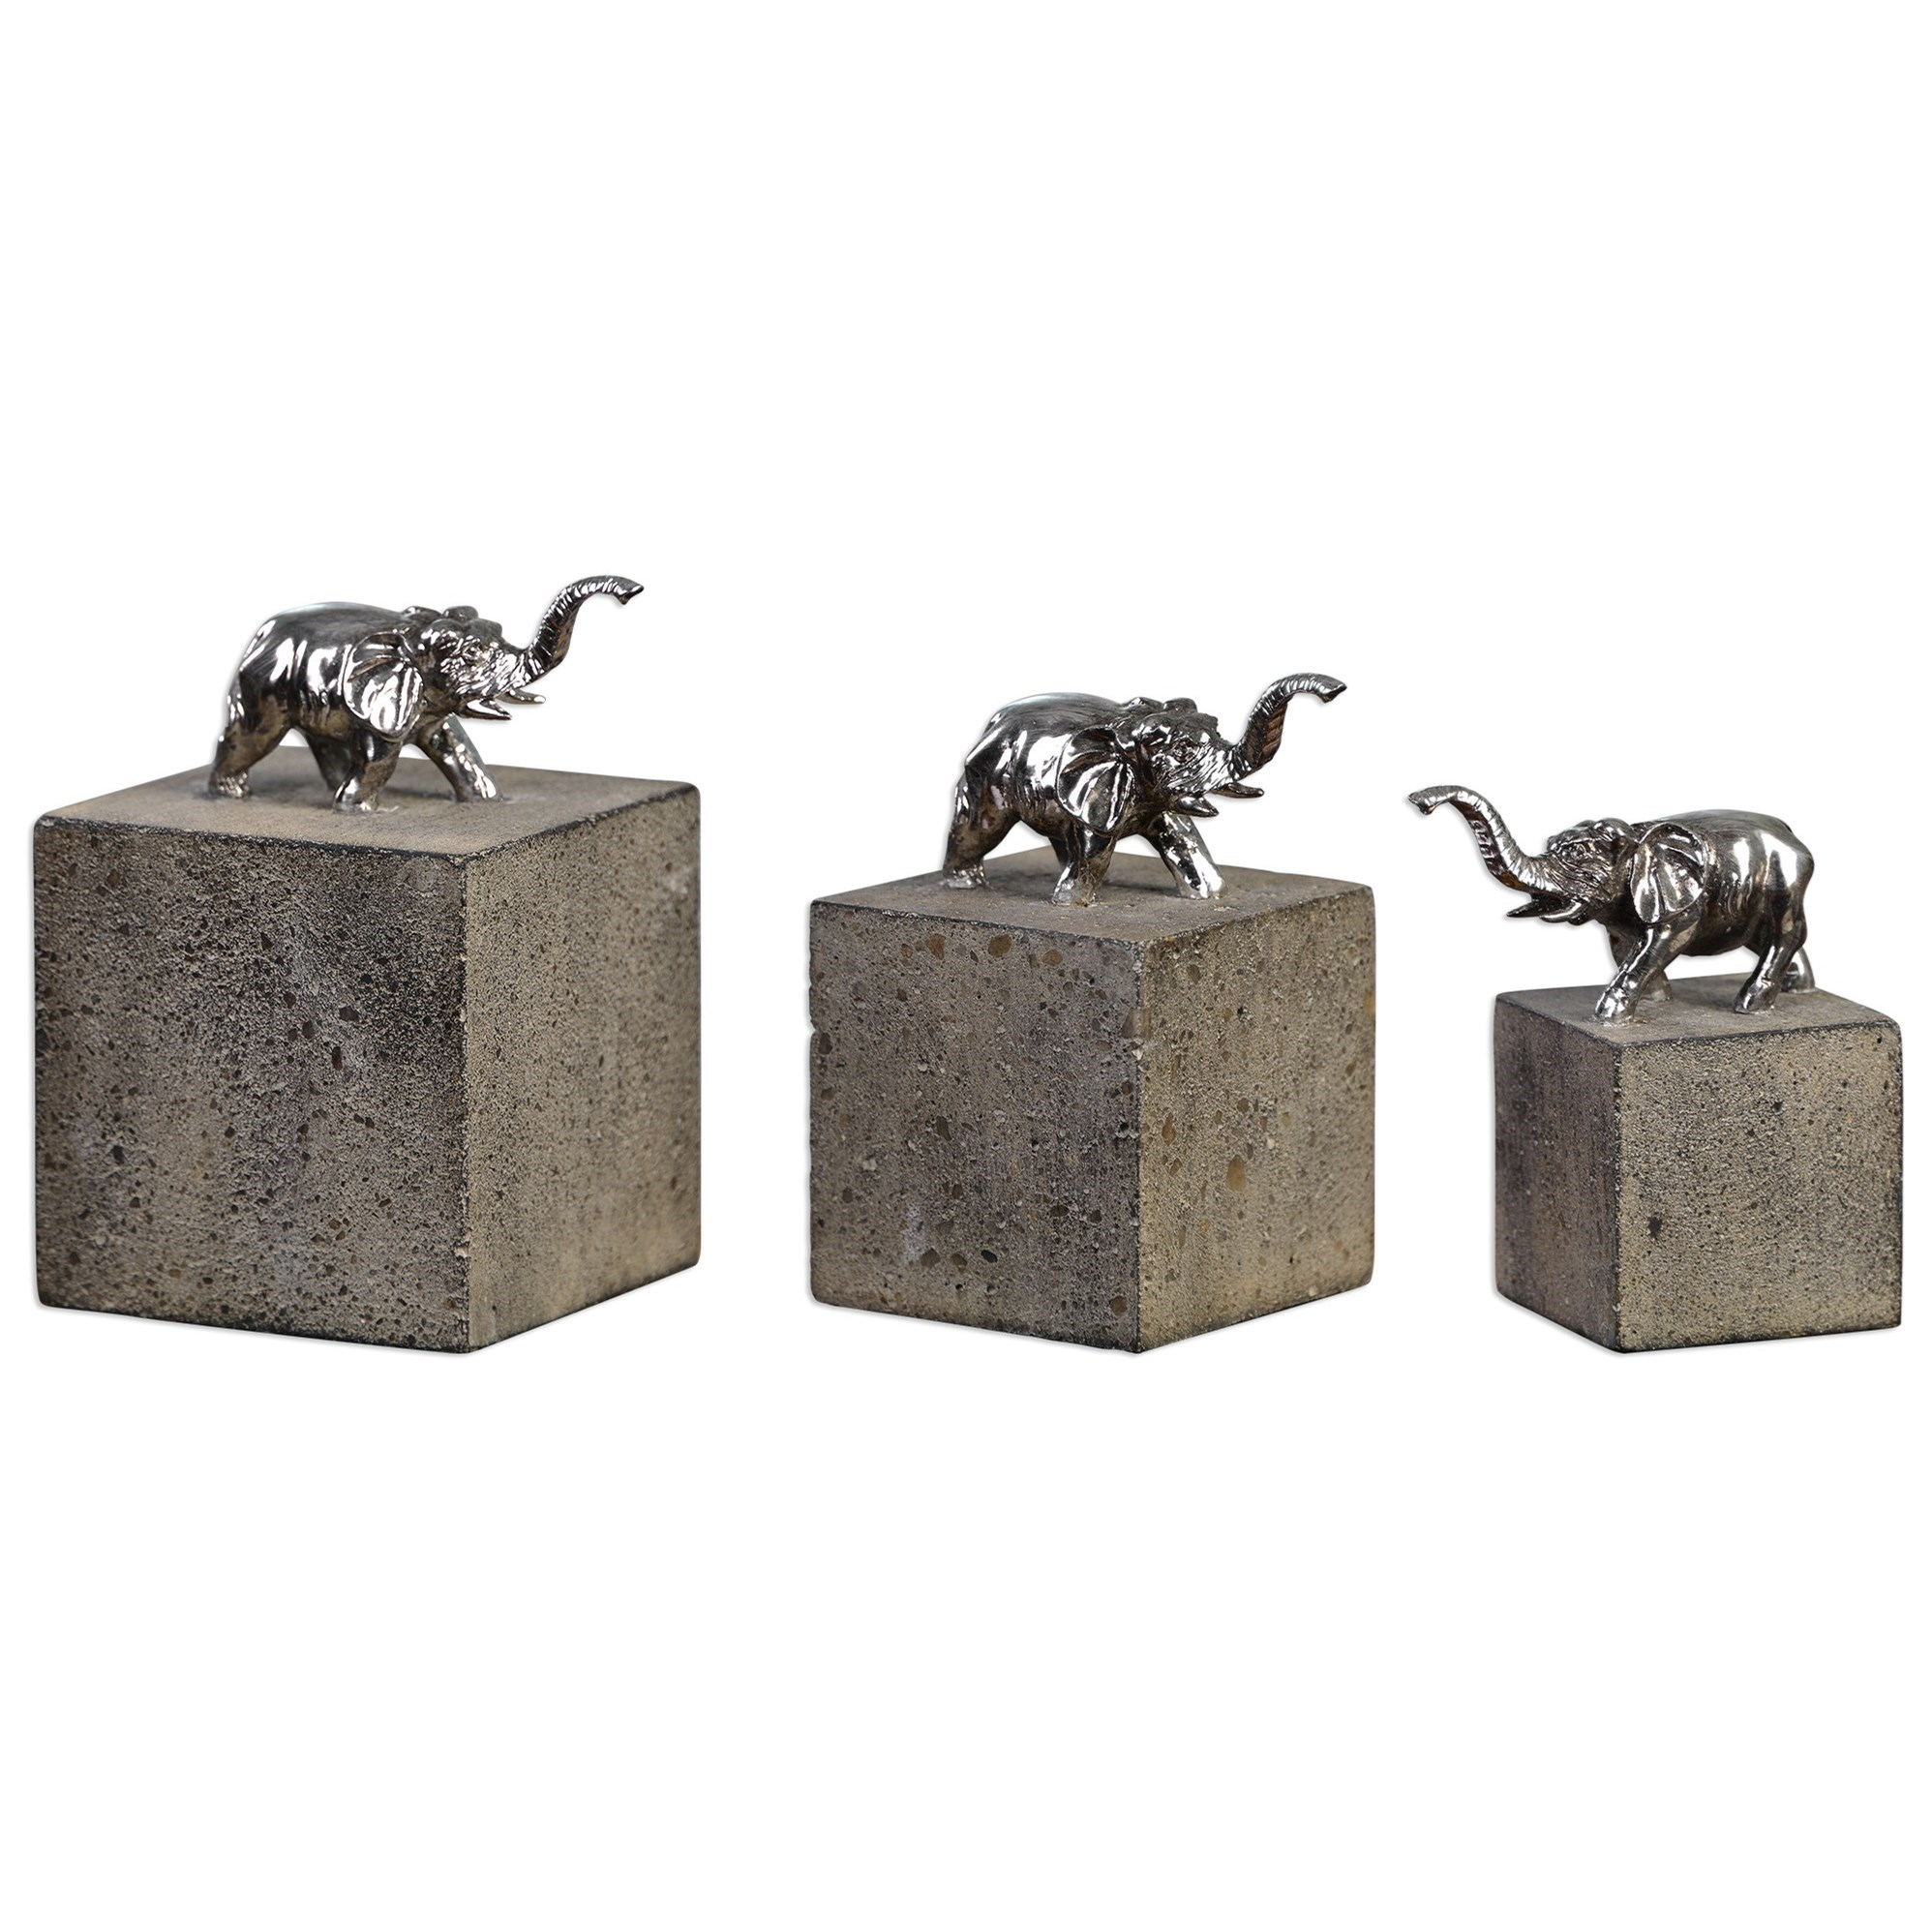 Uttermost Accessories Tiberia Elephant Sculpture S/3 - Item Number: 20096